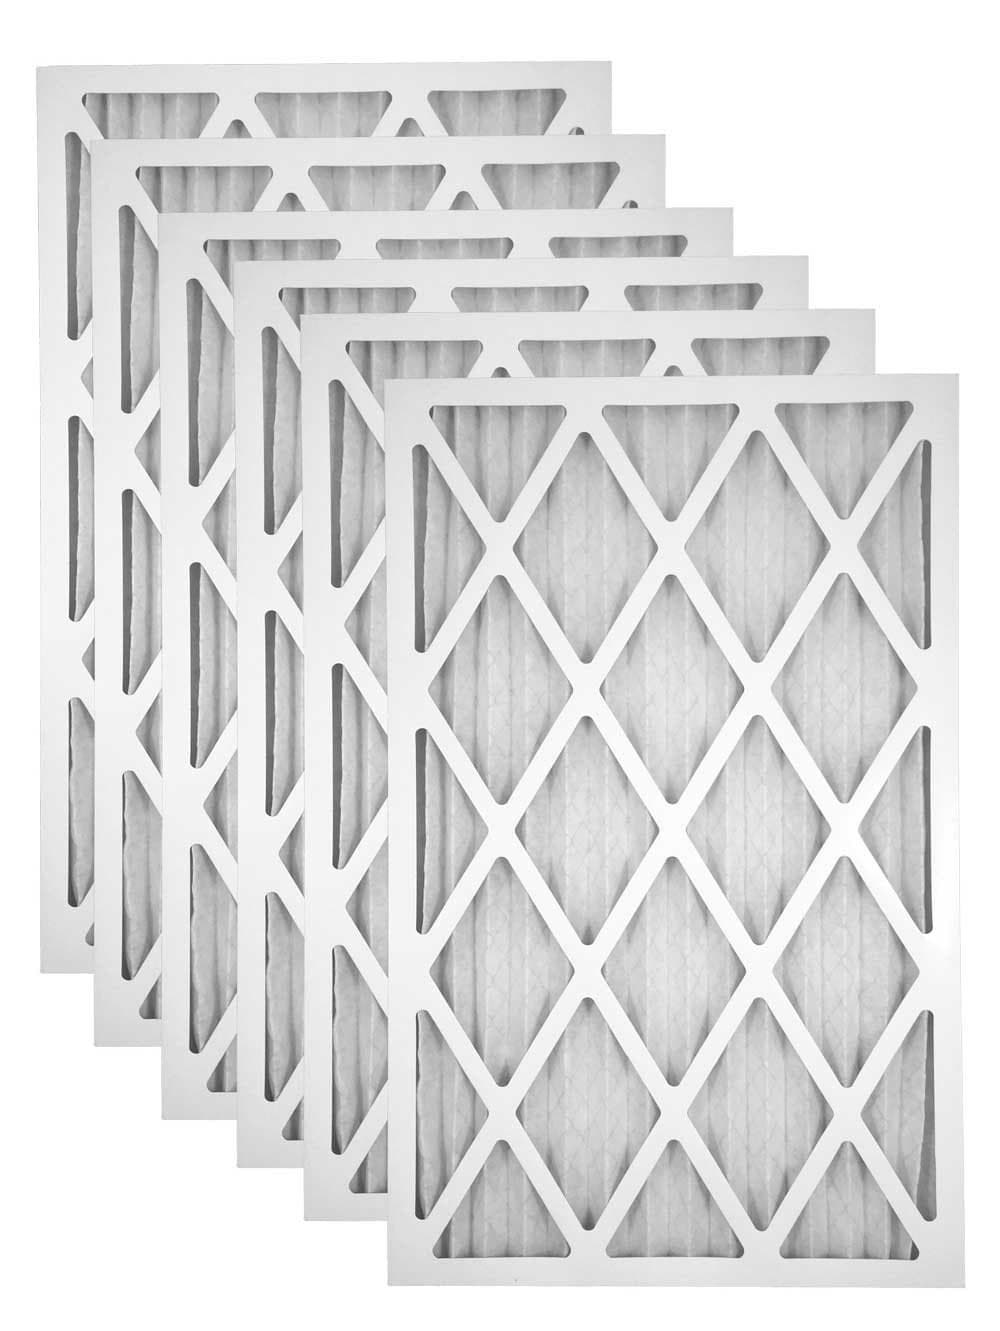 14x30x1 Merv 13 AC Furnace Filter - Case of 6